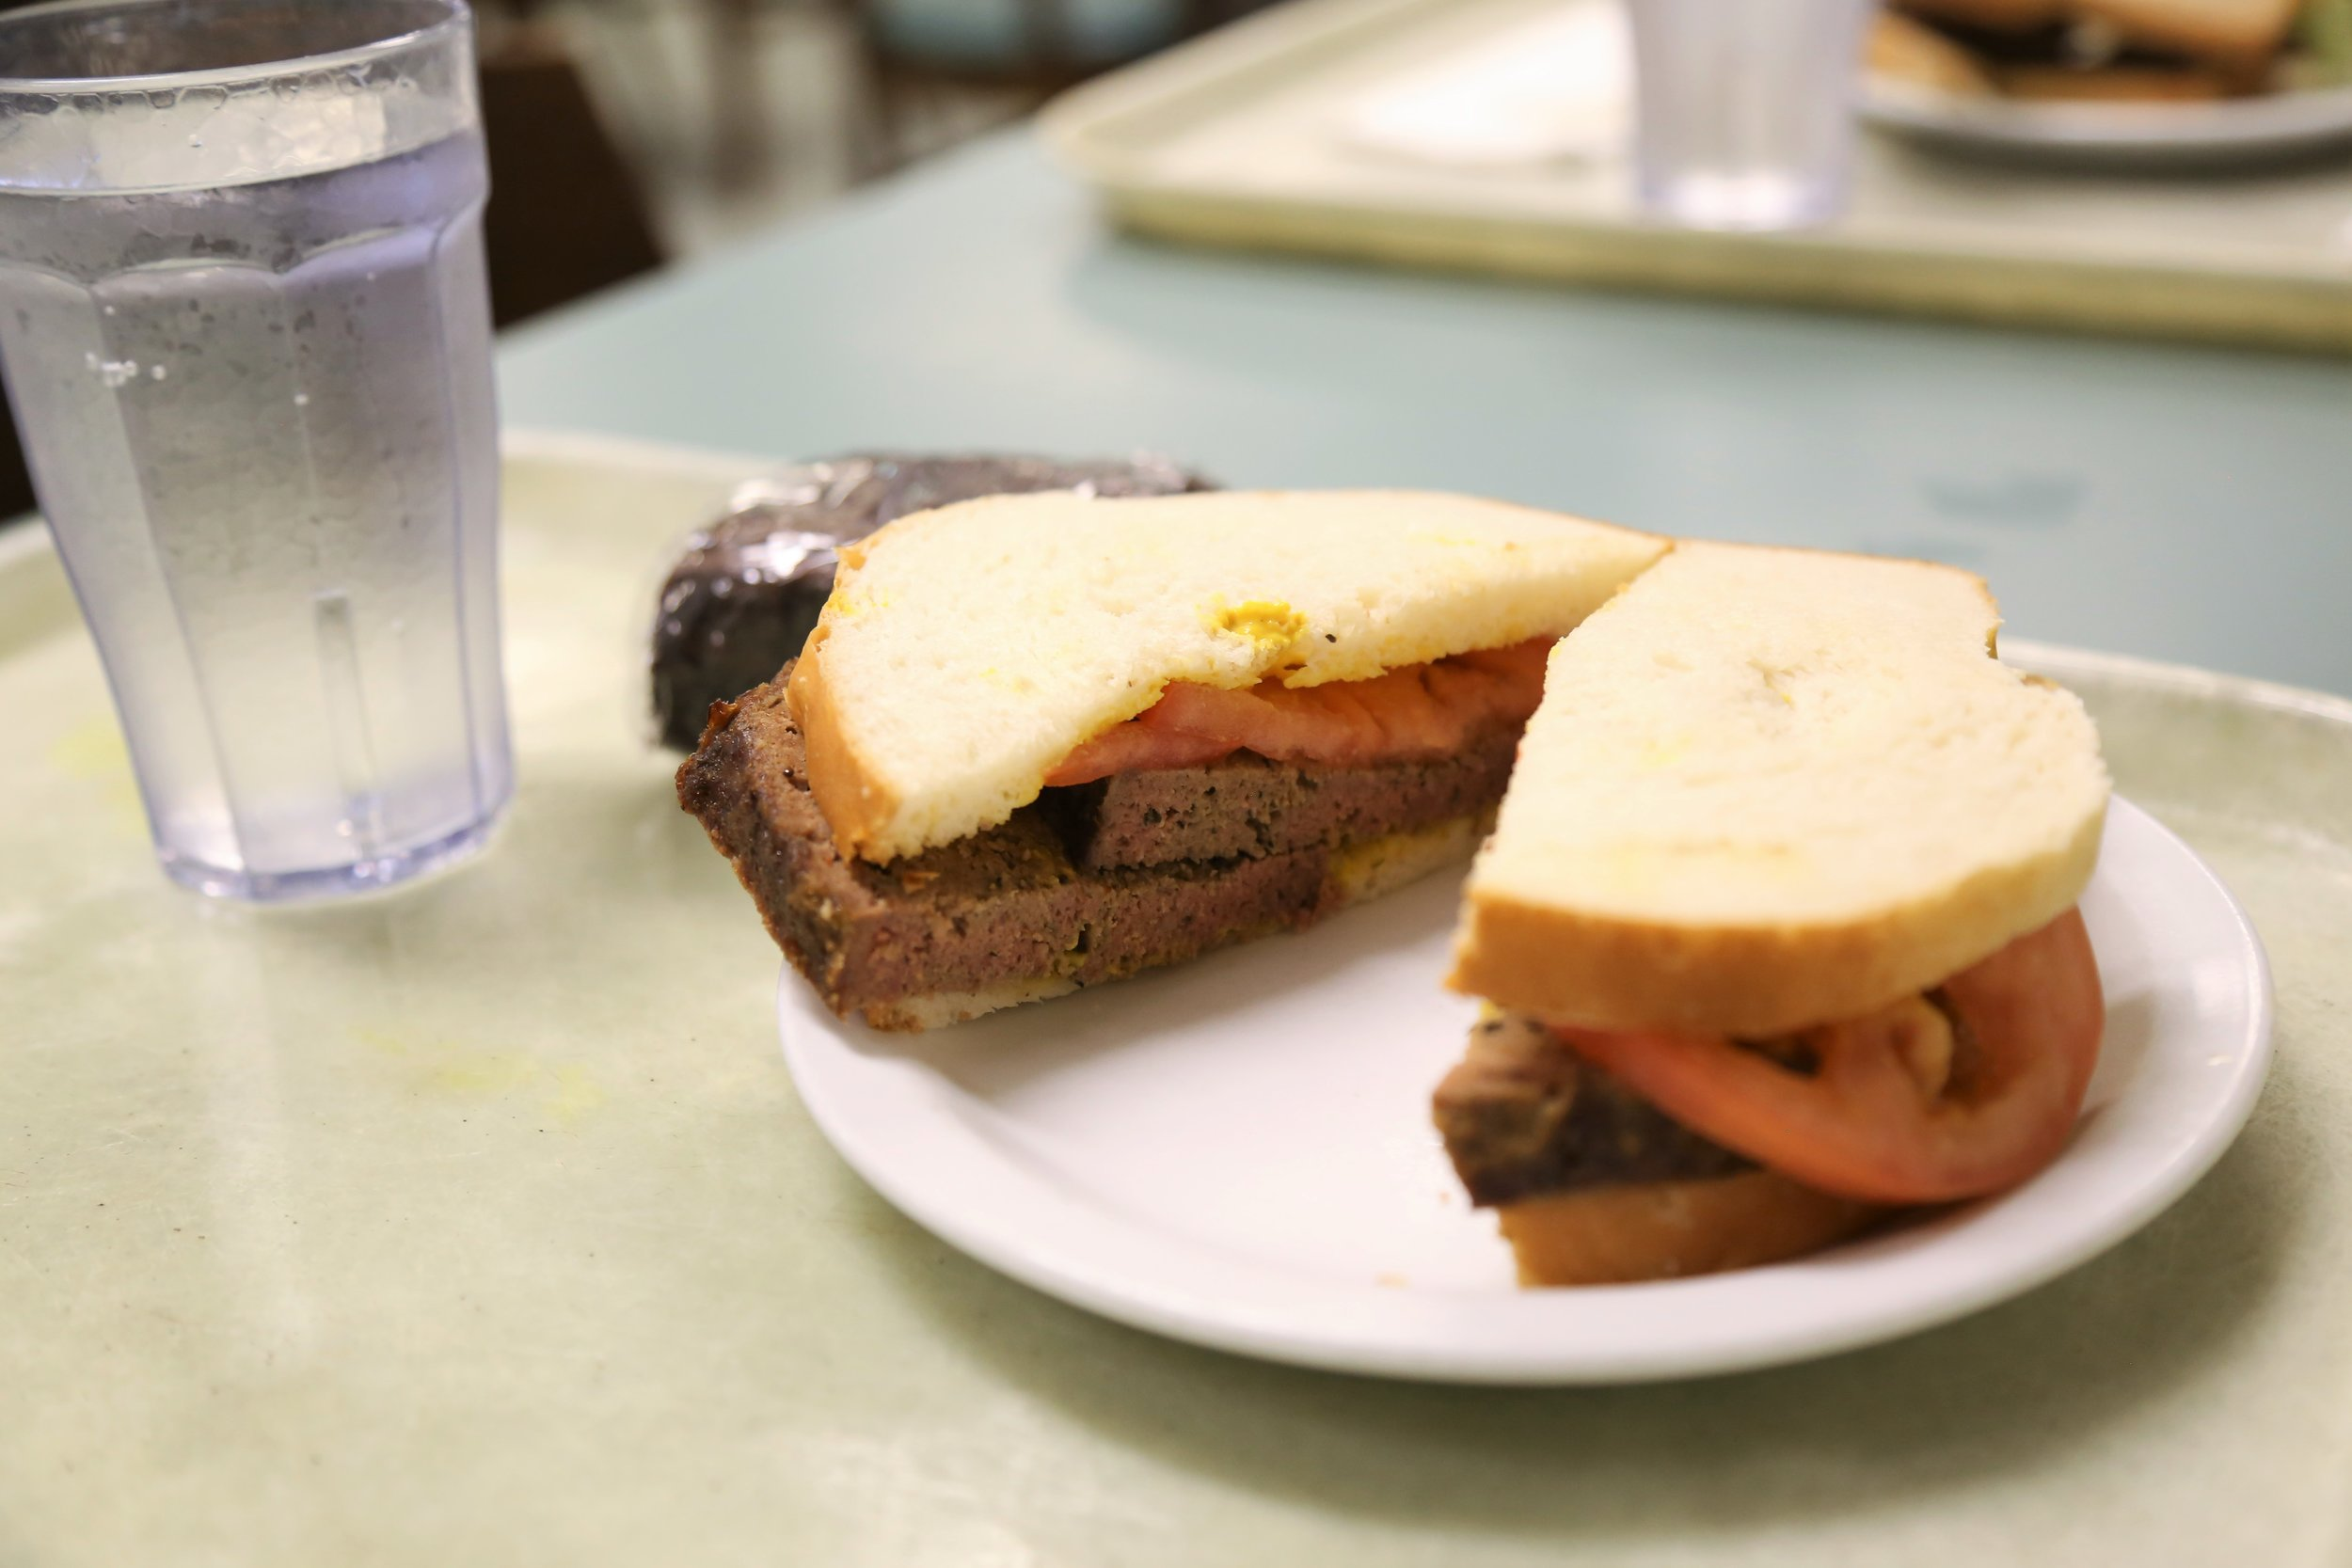 The meatloaf sandwich. We never said it looked pretty, but it tastes amazing!